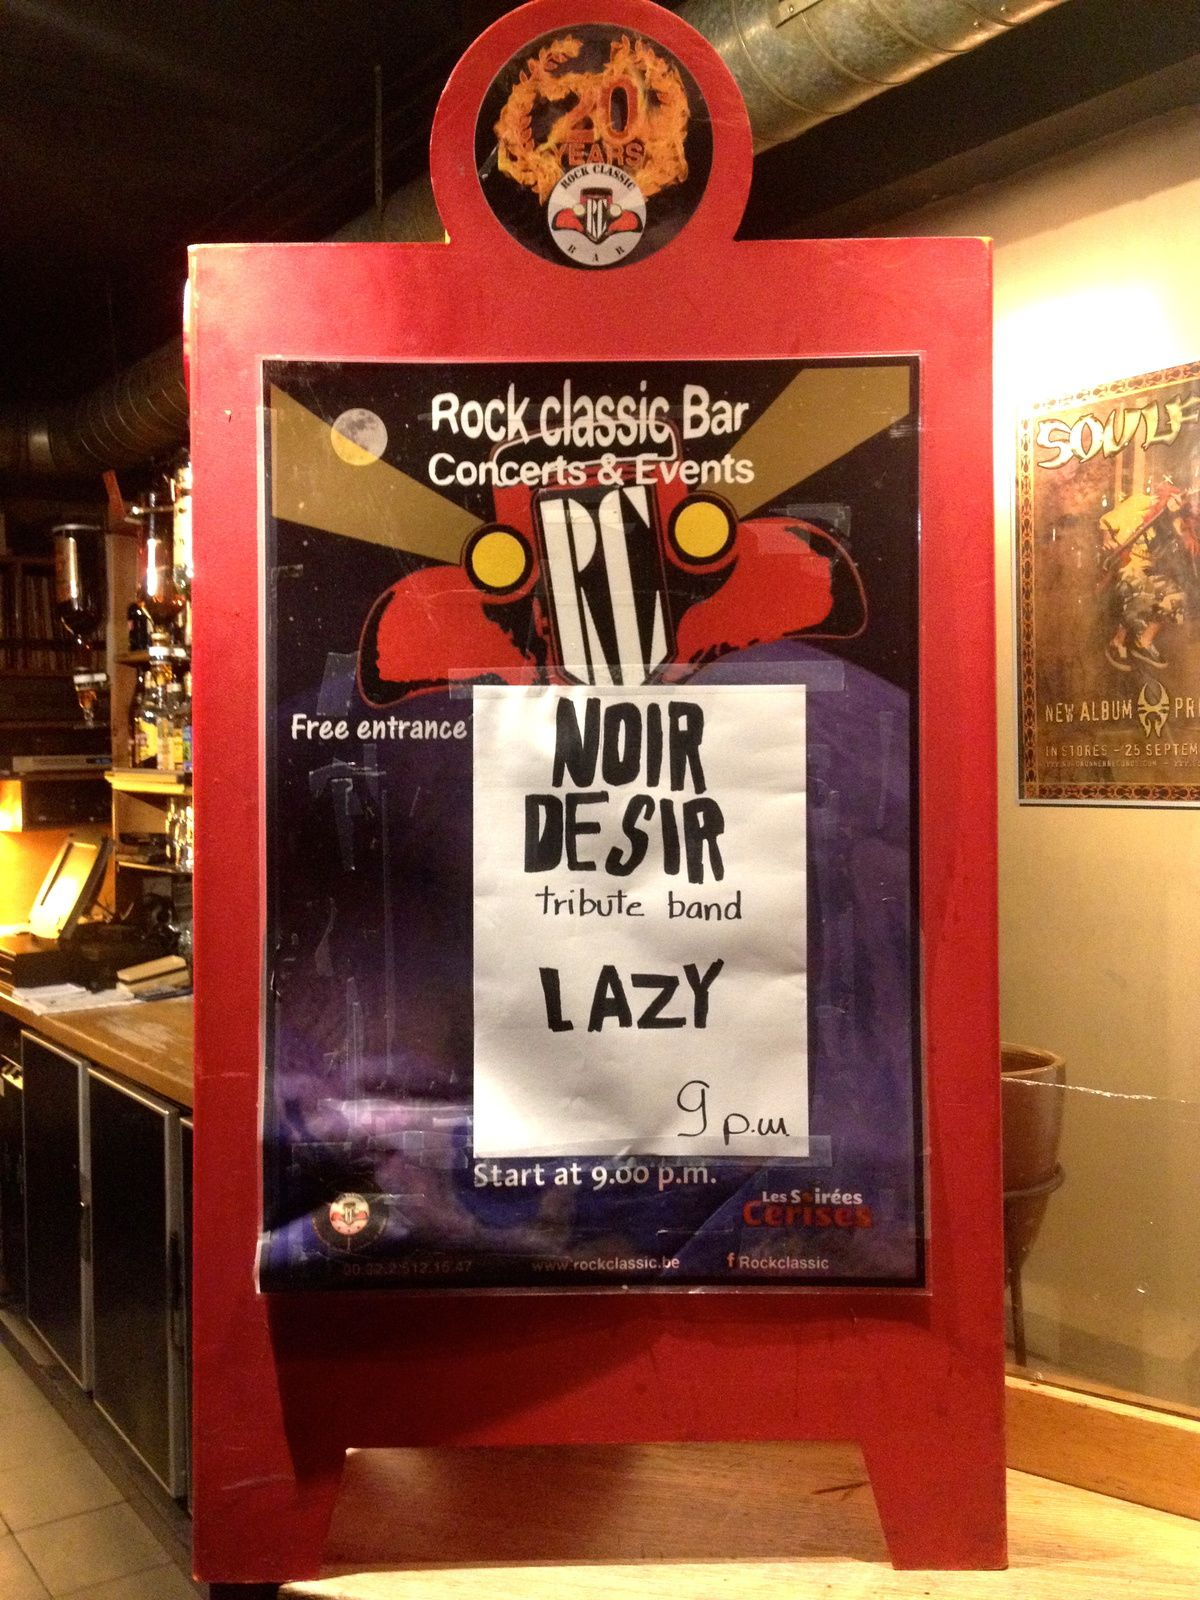 ▶ LAZY (NOIR DESIR tribute band) @ Rock Classic - 27/05/2017